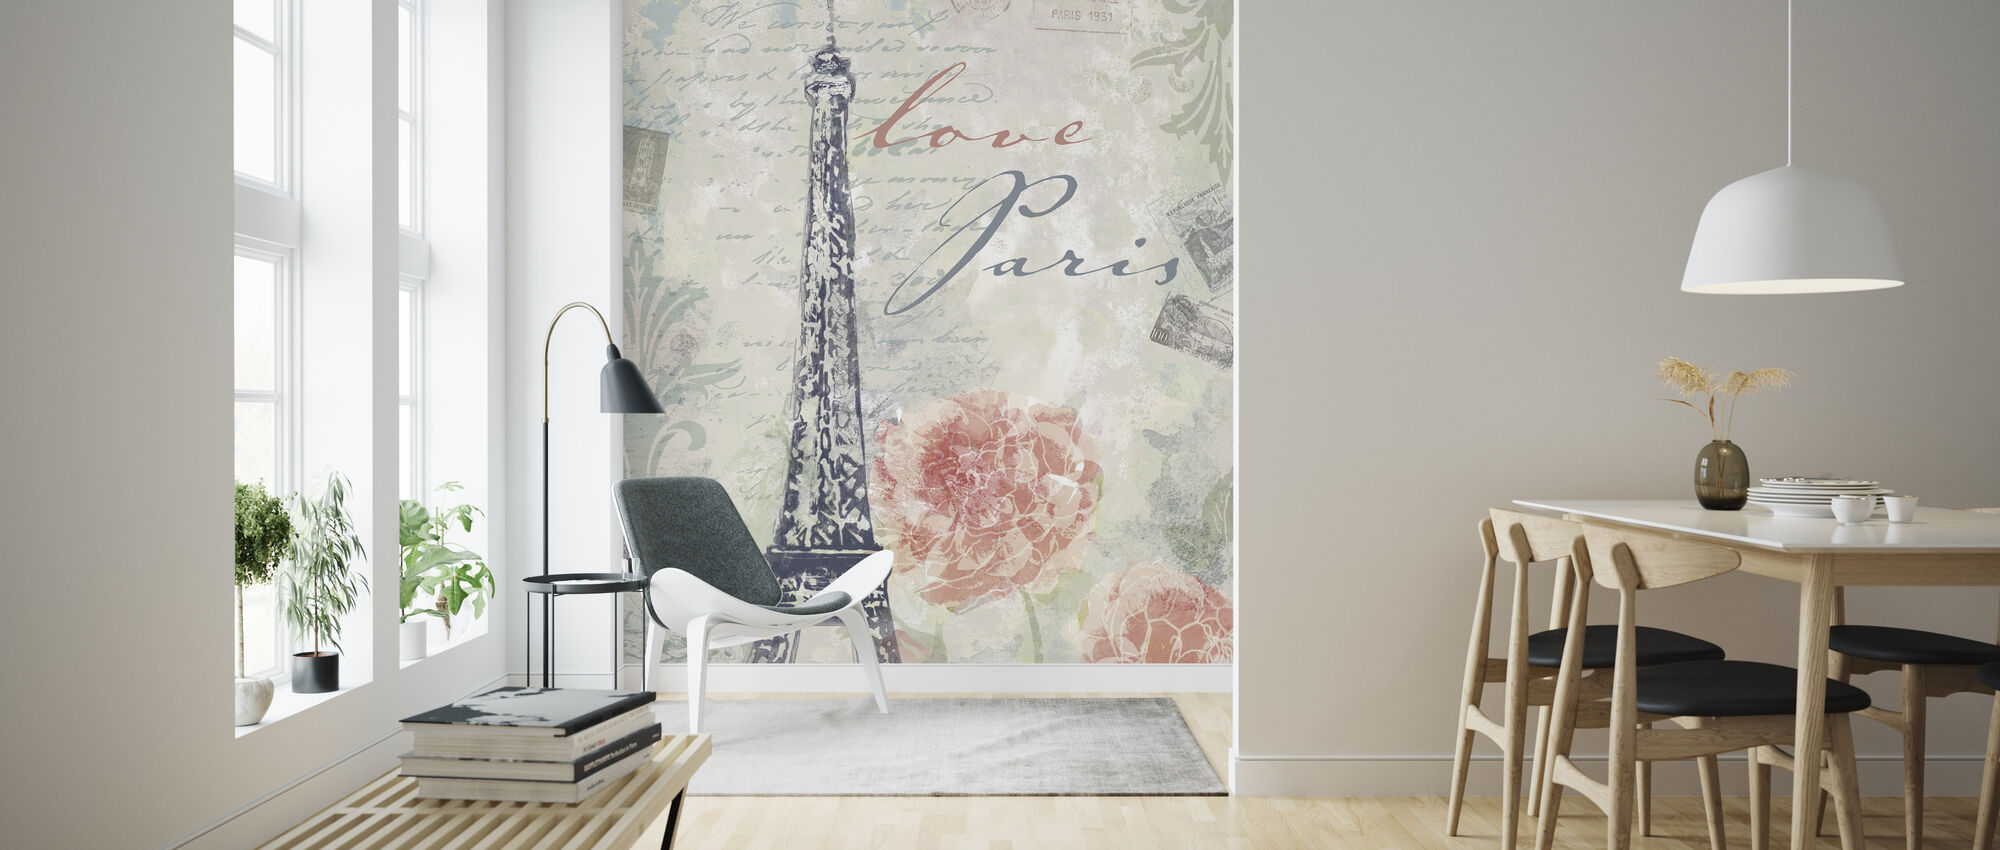 Love Paris - Wallpaper - Living Room